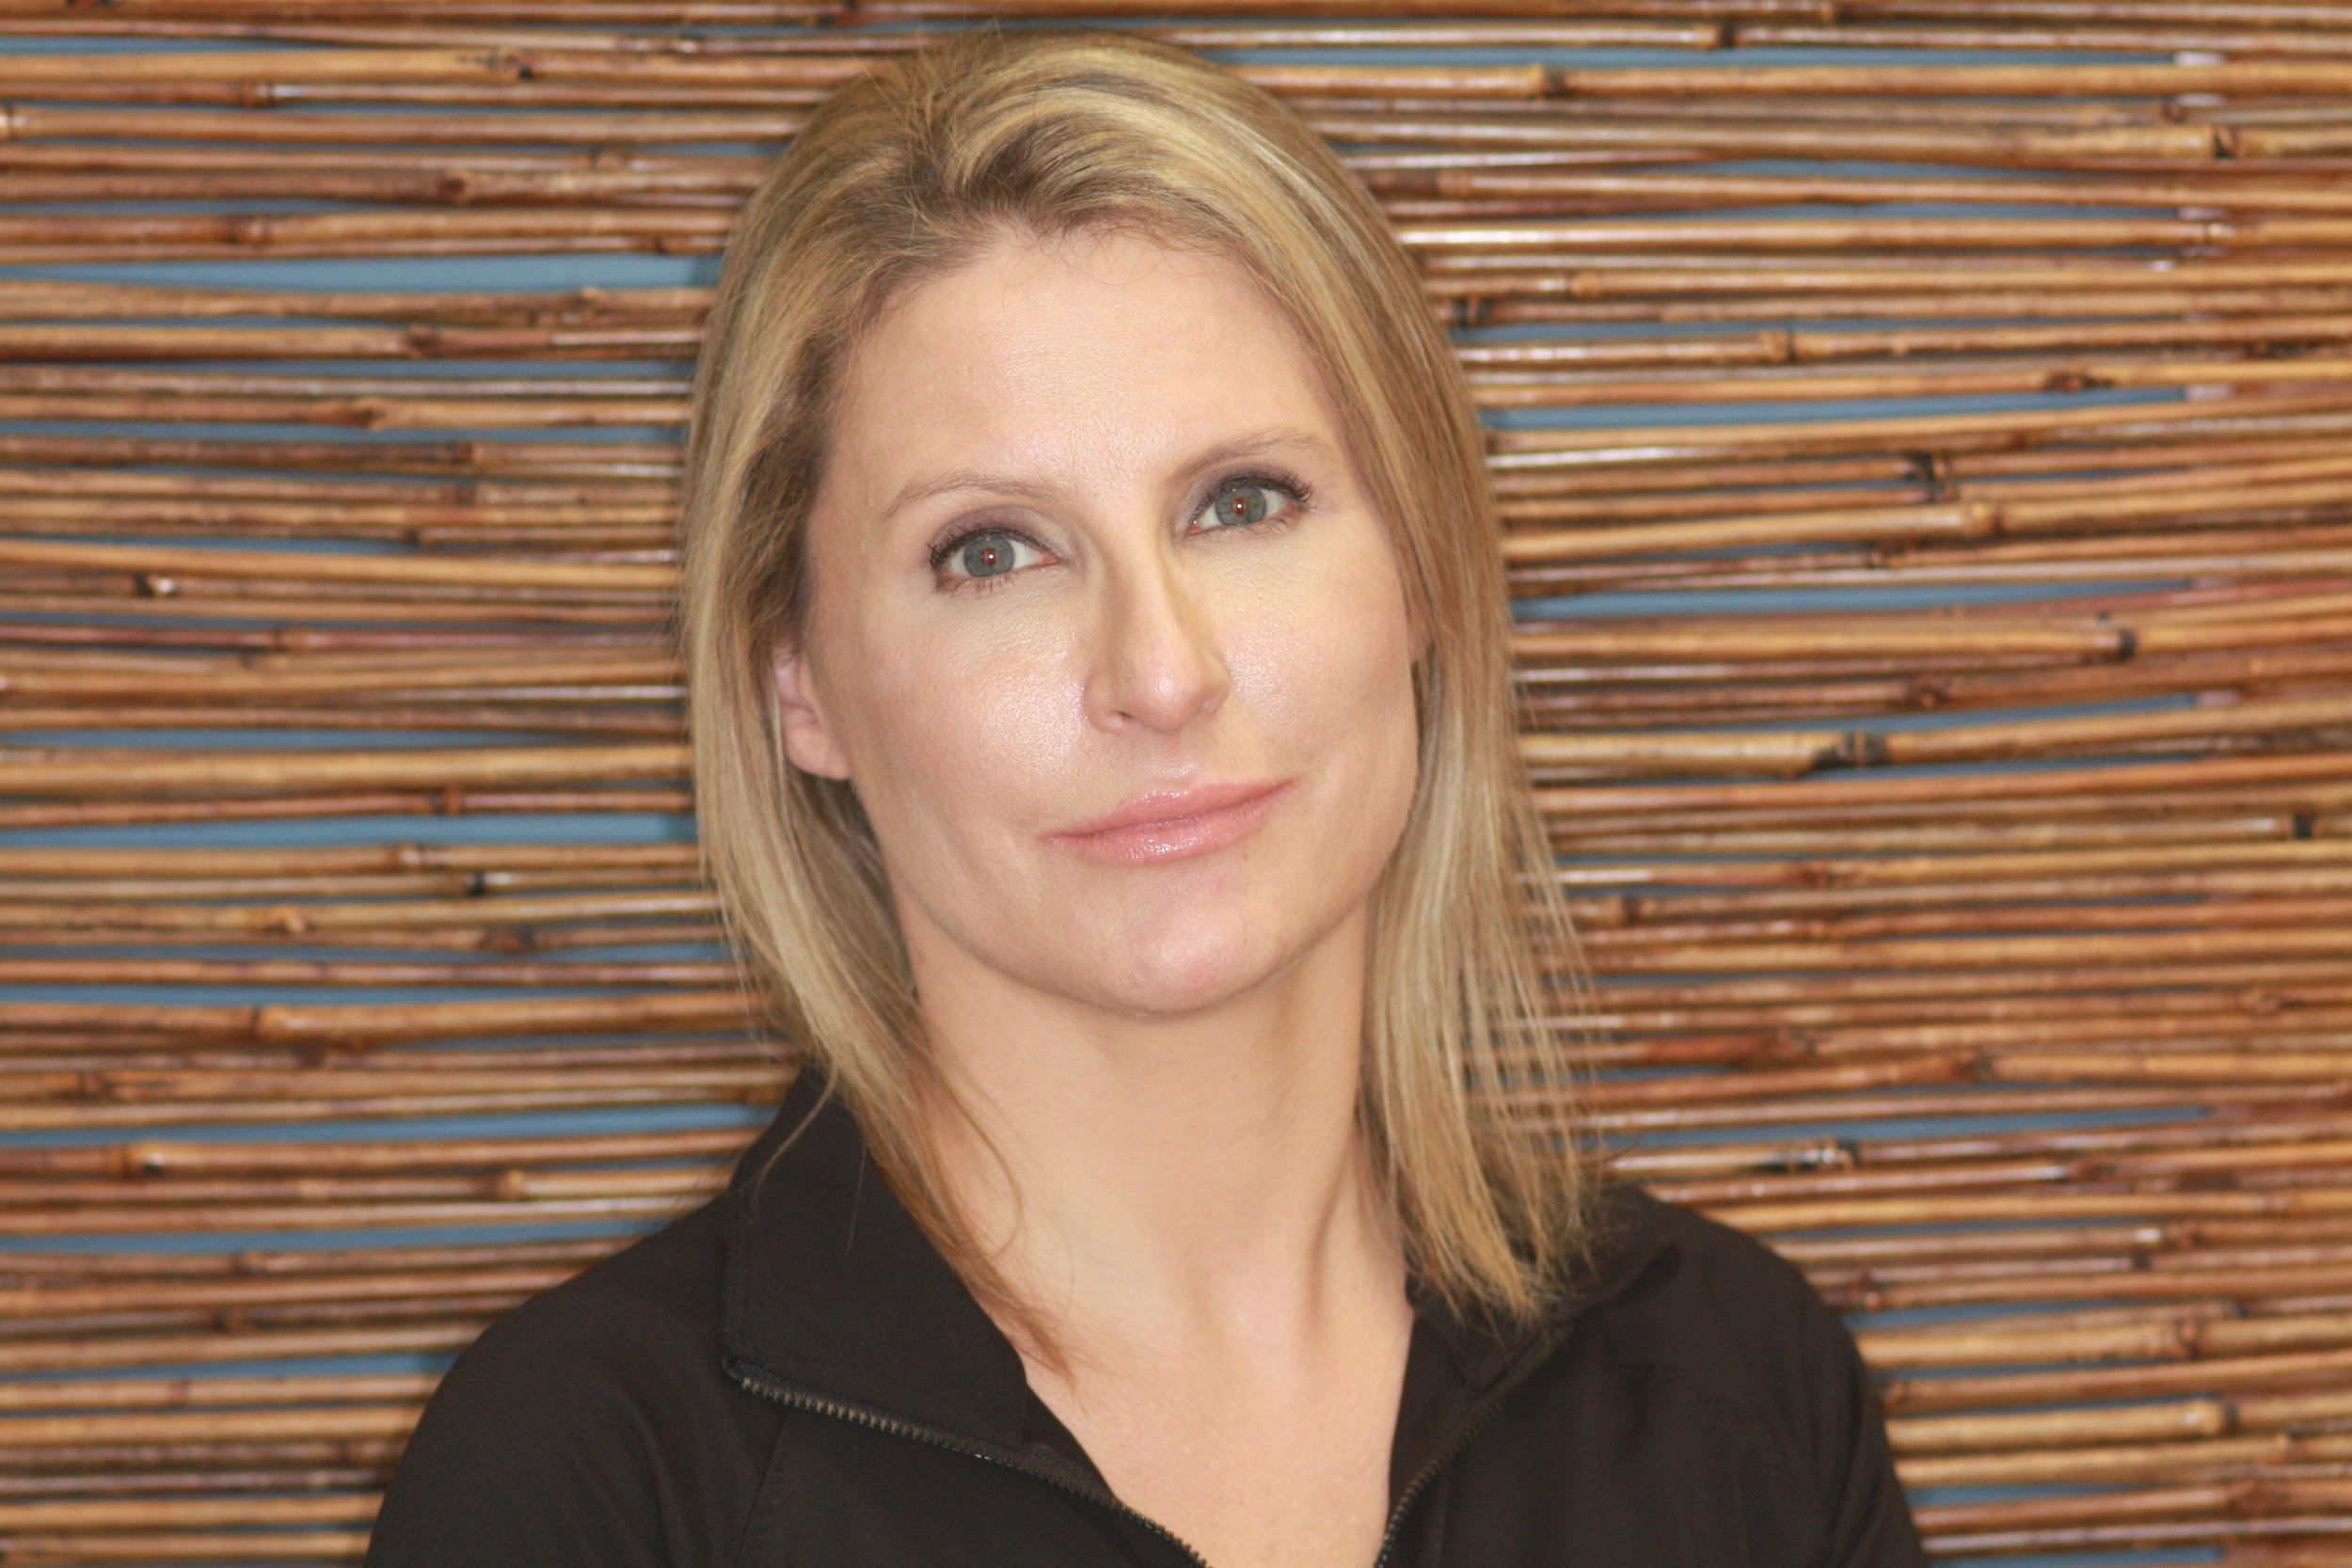 Marzena Kostrzanowska – Certified Laser Technician / Clinical Aesthetian / Skin Care Therapist